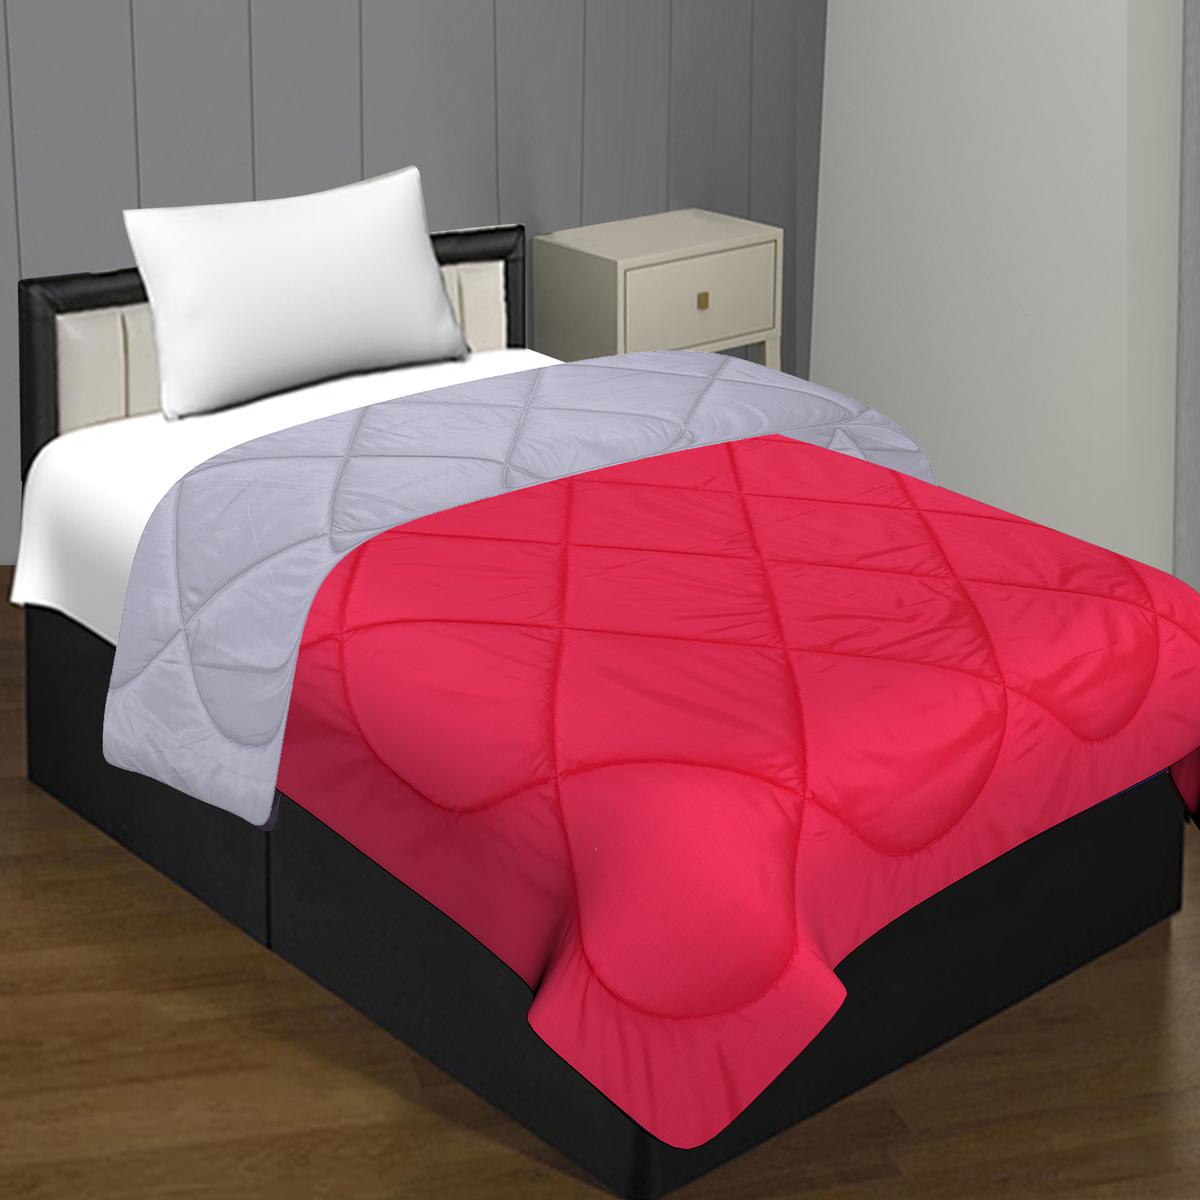 Magnetic Dark Pink - White Colored Solid Poly Cotton Single Bed Comforter